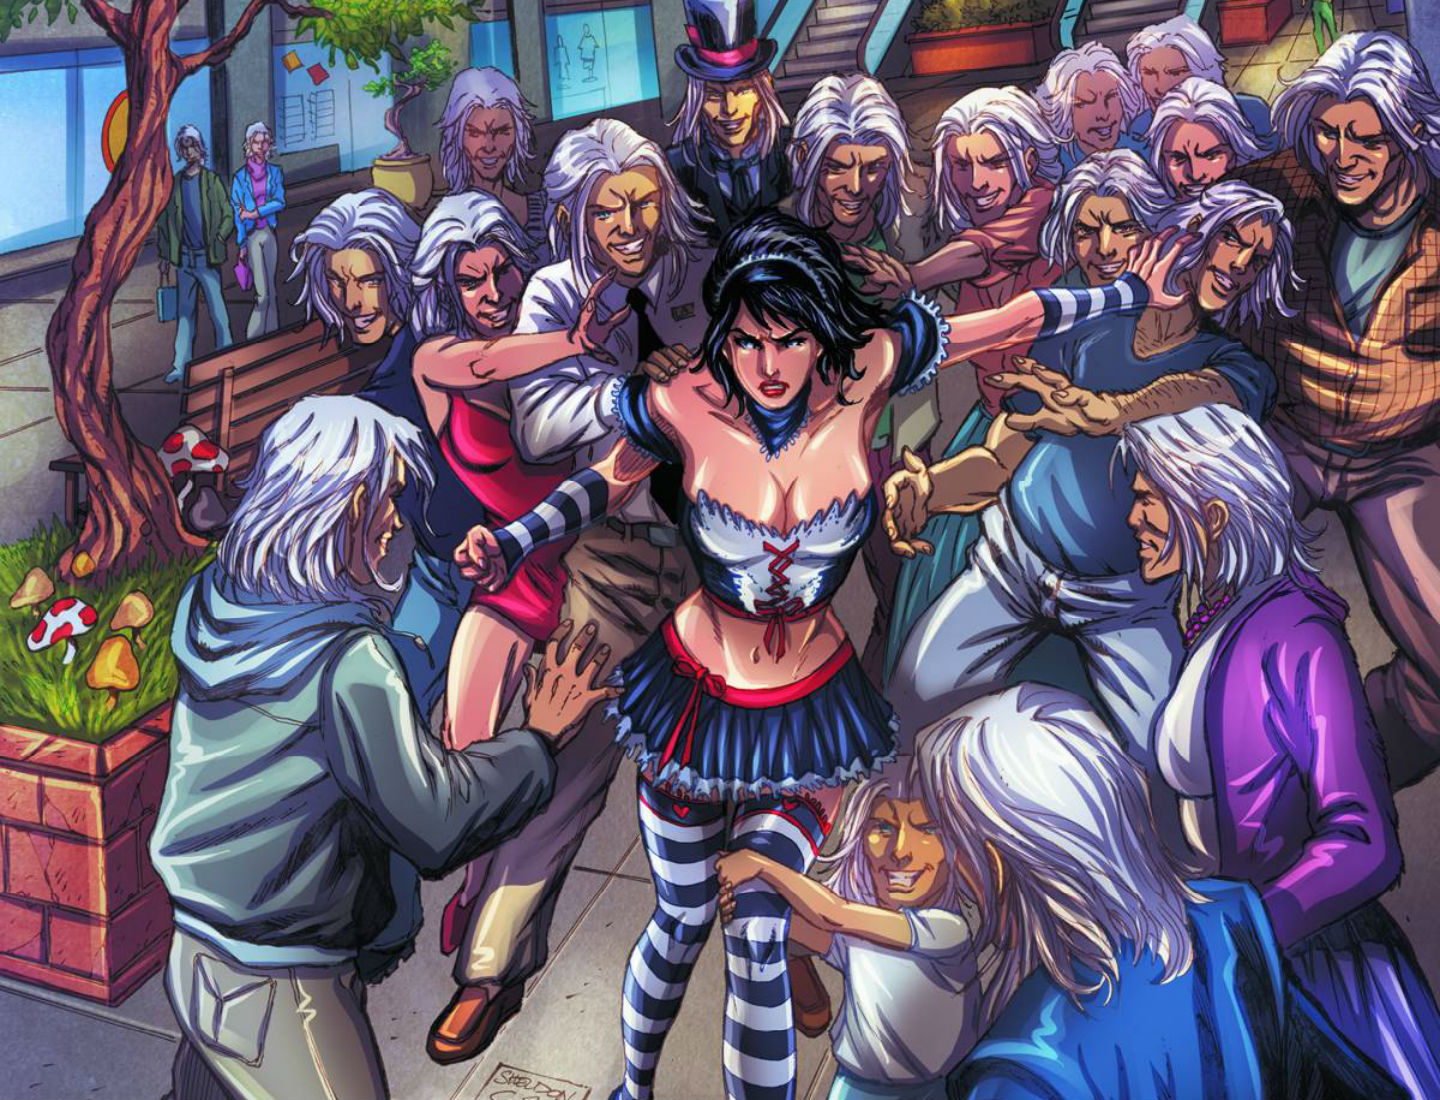 female grimm fairy tales wallpaper - photo #10